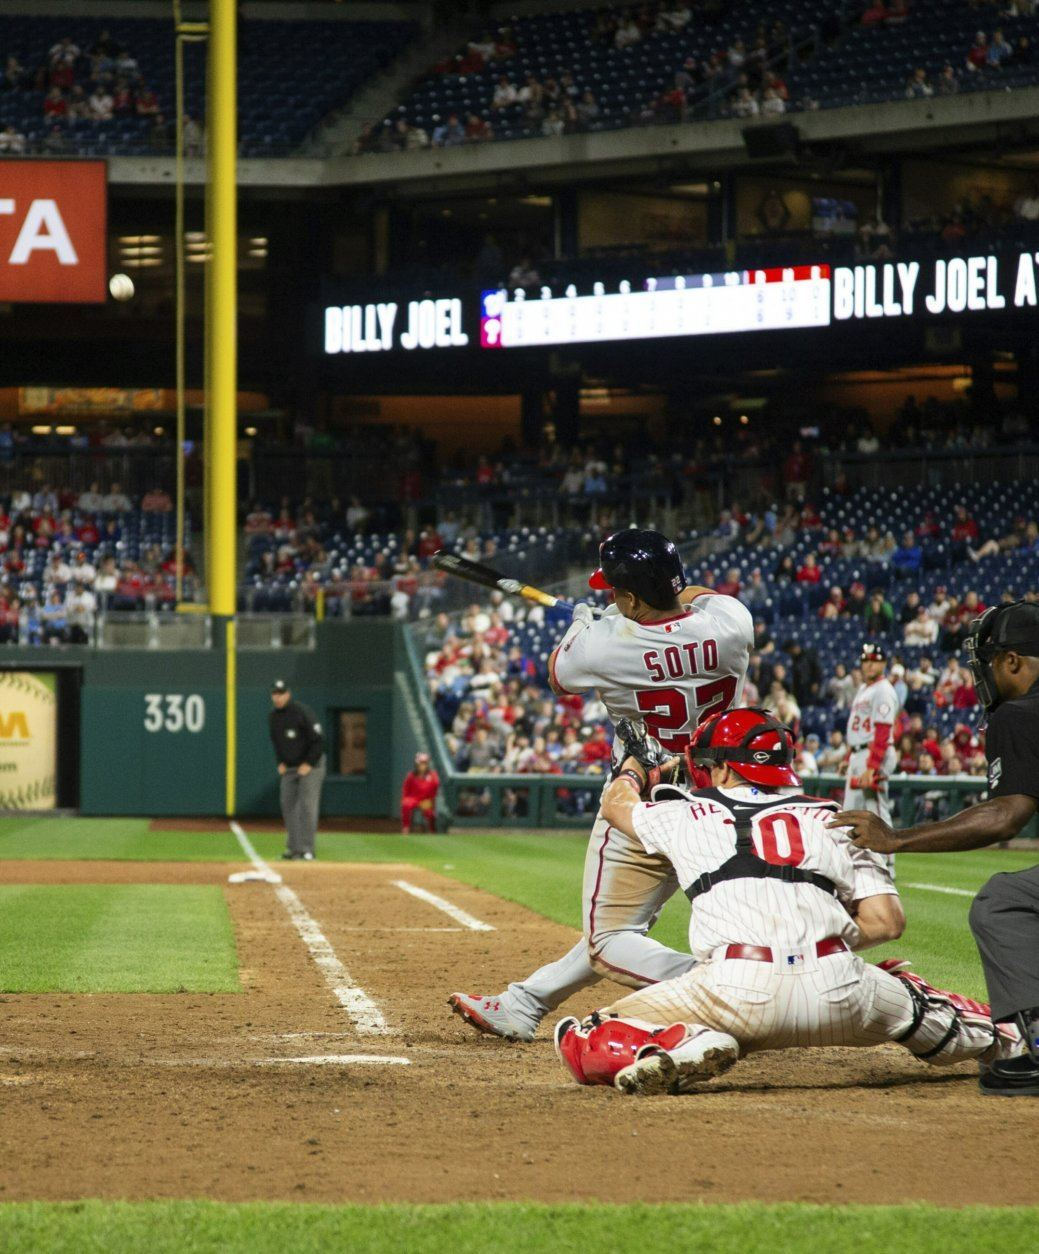 Washington Nationals' Juan Soto hits a three-run home run during the 10th inning of the team's baseball game against the Philadelphia Phillies, Tuesday, April 9, 2019, in Philadelphia. The Nationals won 10-6 in 10 innings. (AP Photo/Chris Szagola)